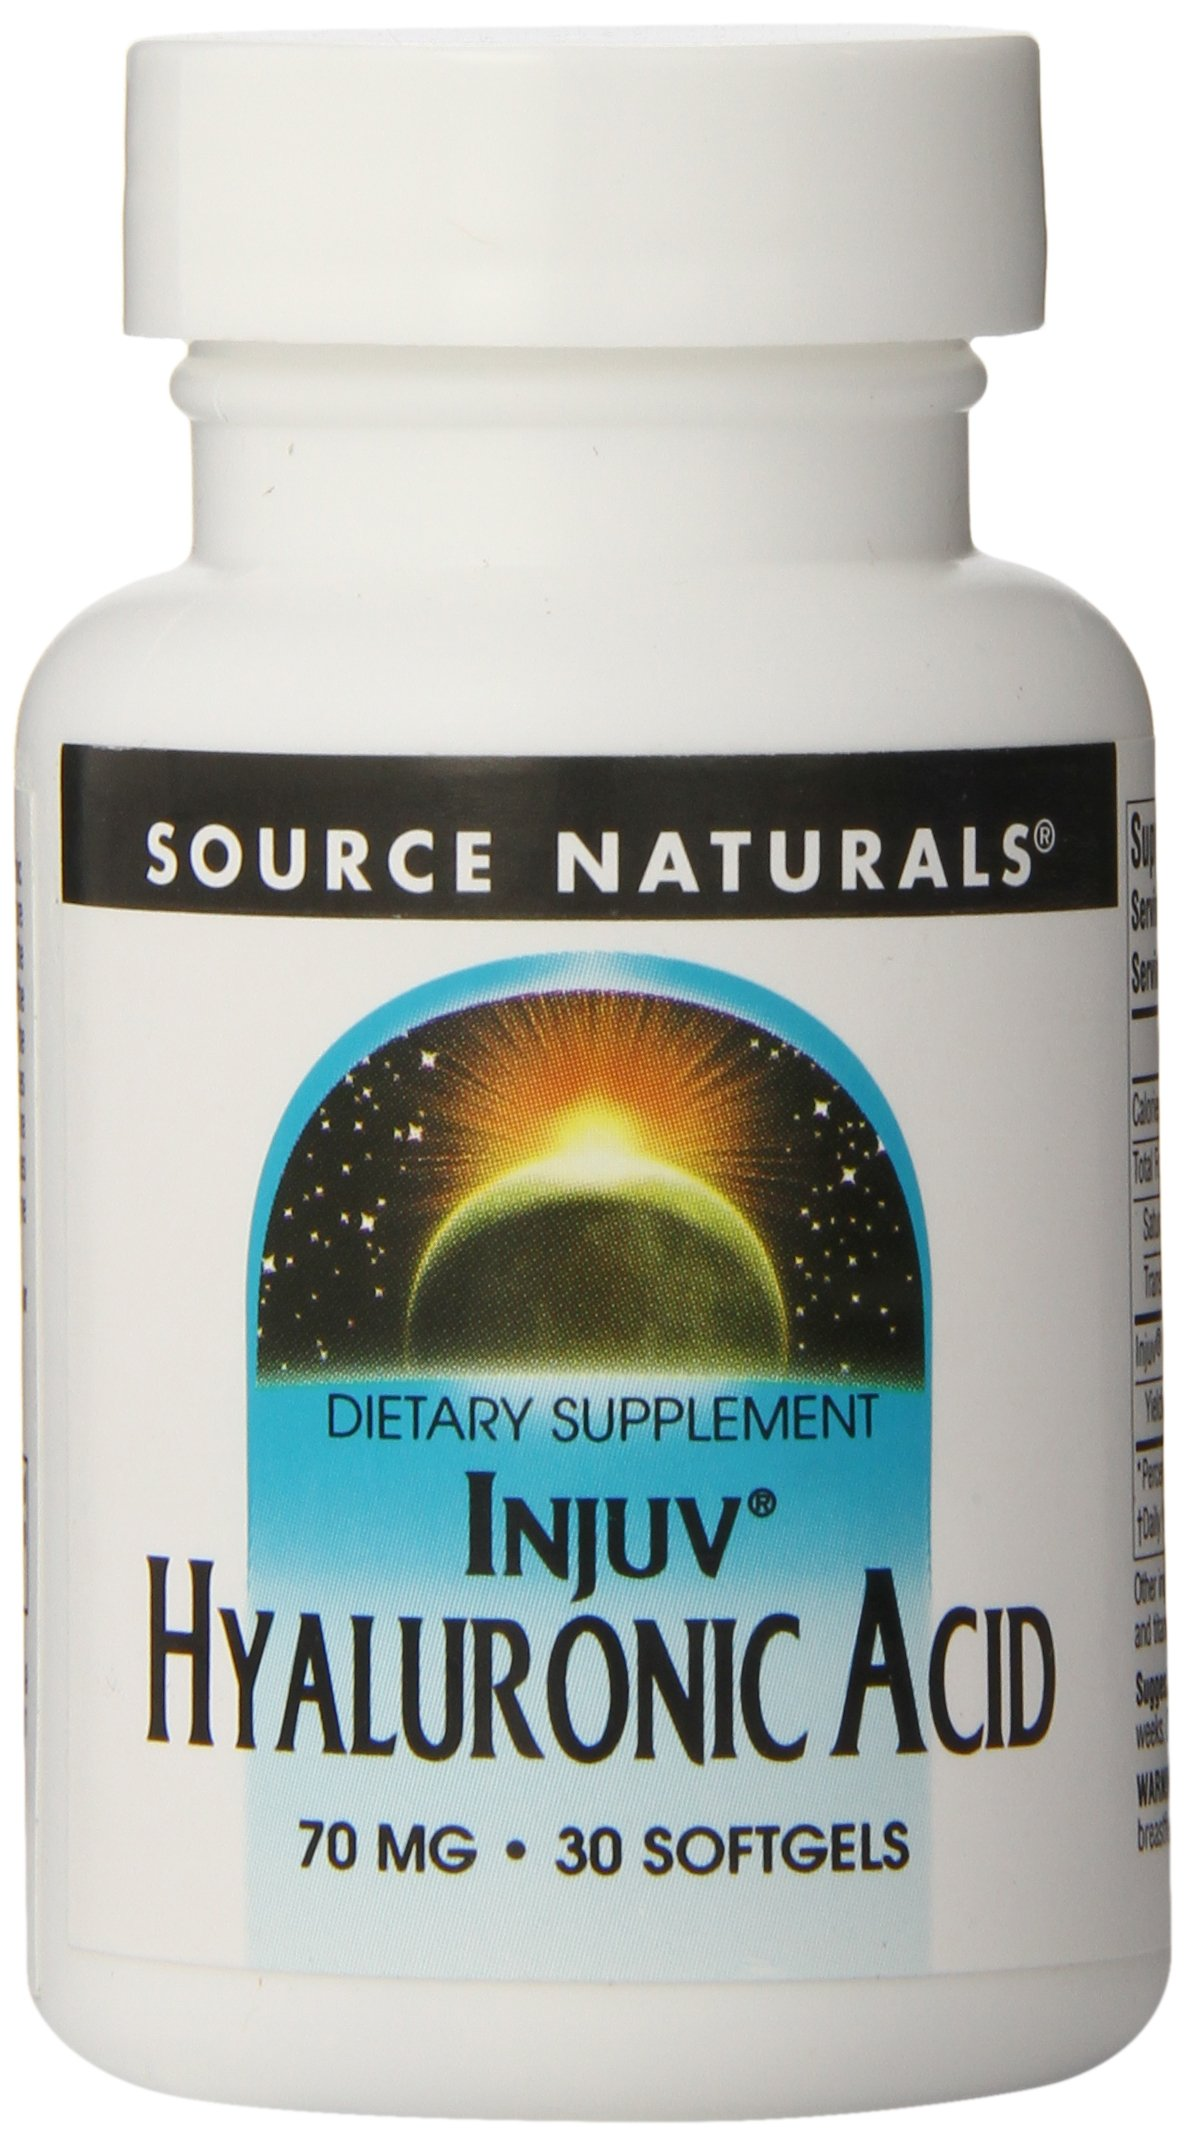 Source Naturals Hyaluronic Acid, 70mg, 30 Softgels (Pack of 12)